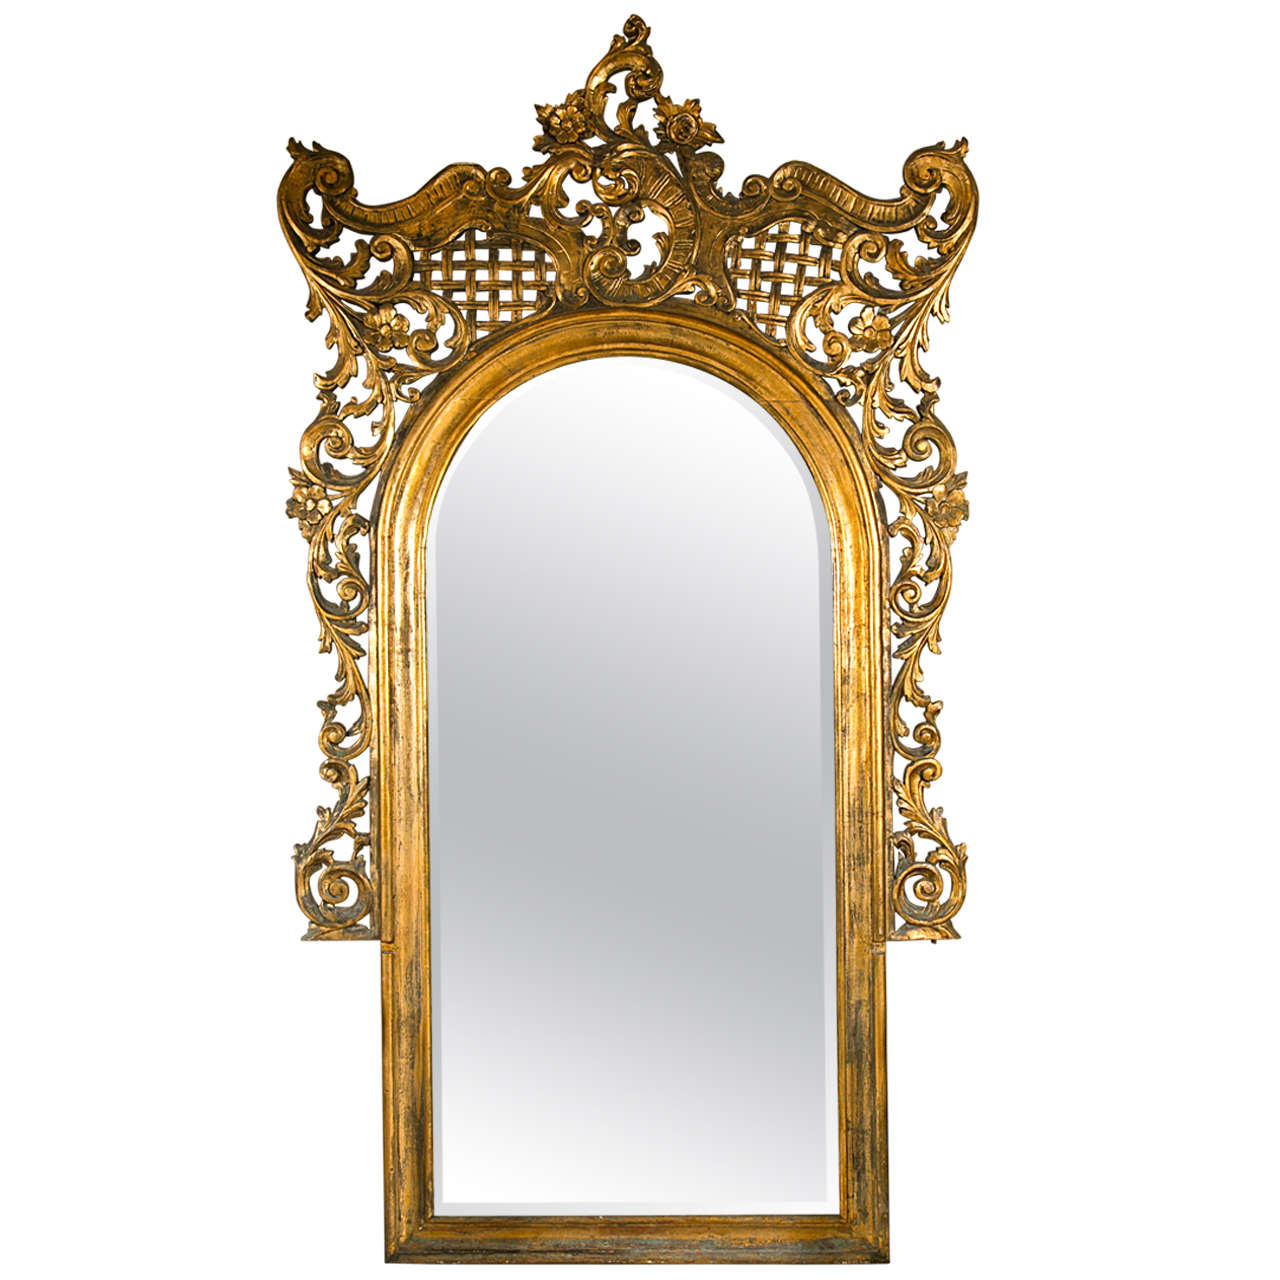 19th Century Monumental French Rococo Floor Mirror at 1stdibs